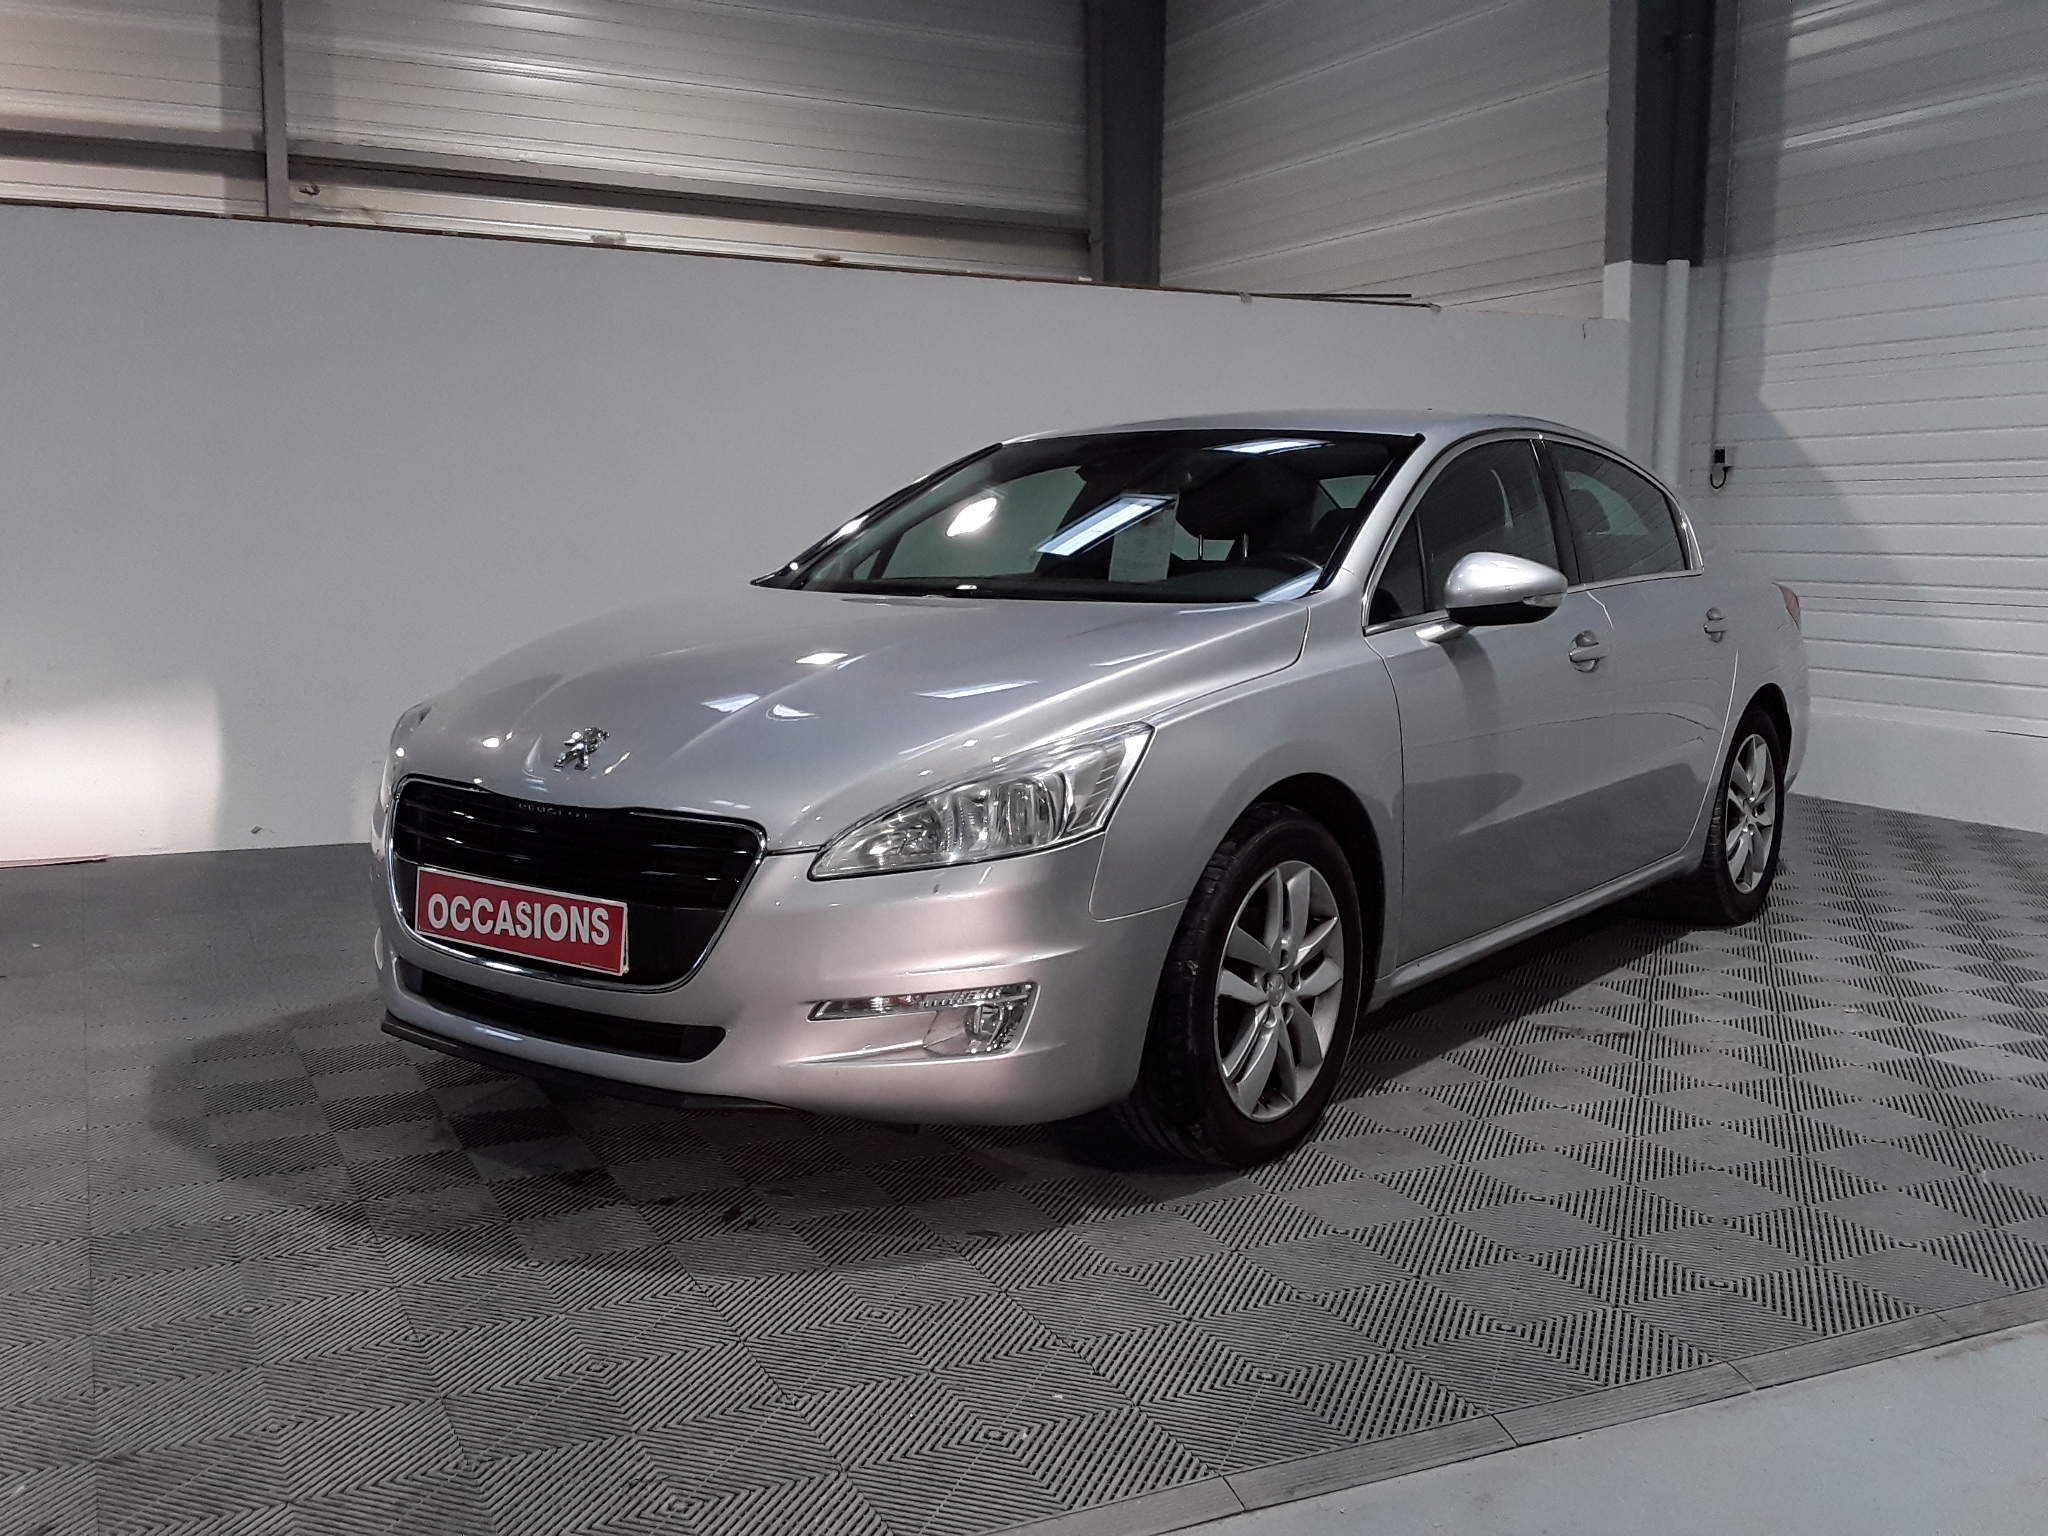 PEUGEOT 508 1.6 HDi 115ch FAP BVM5 Style d'occasion